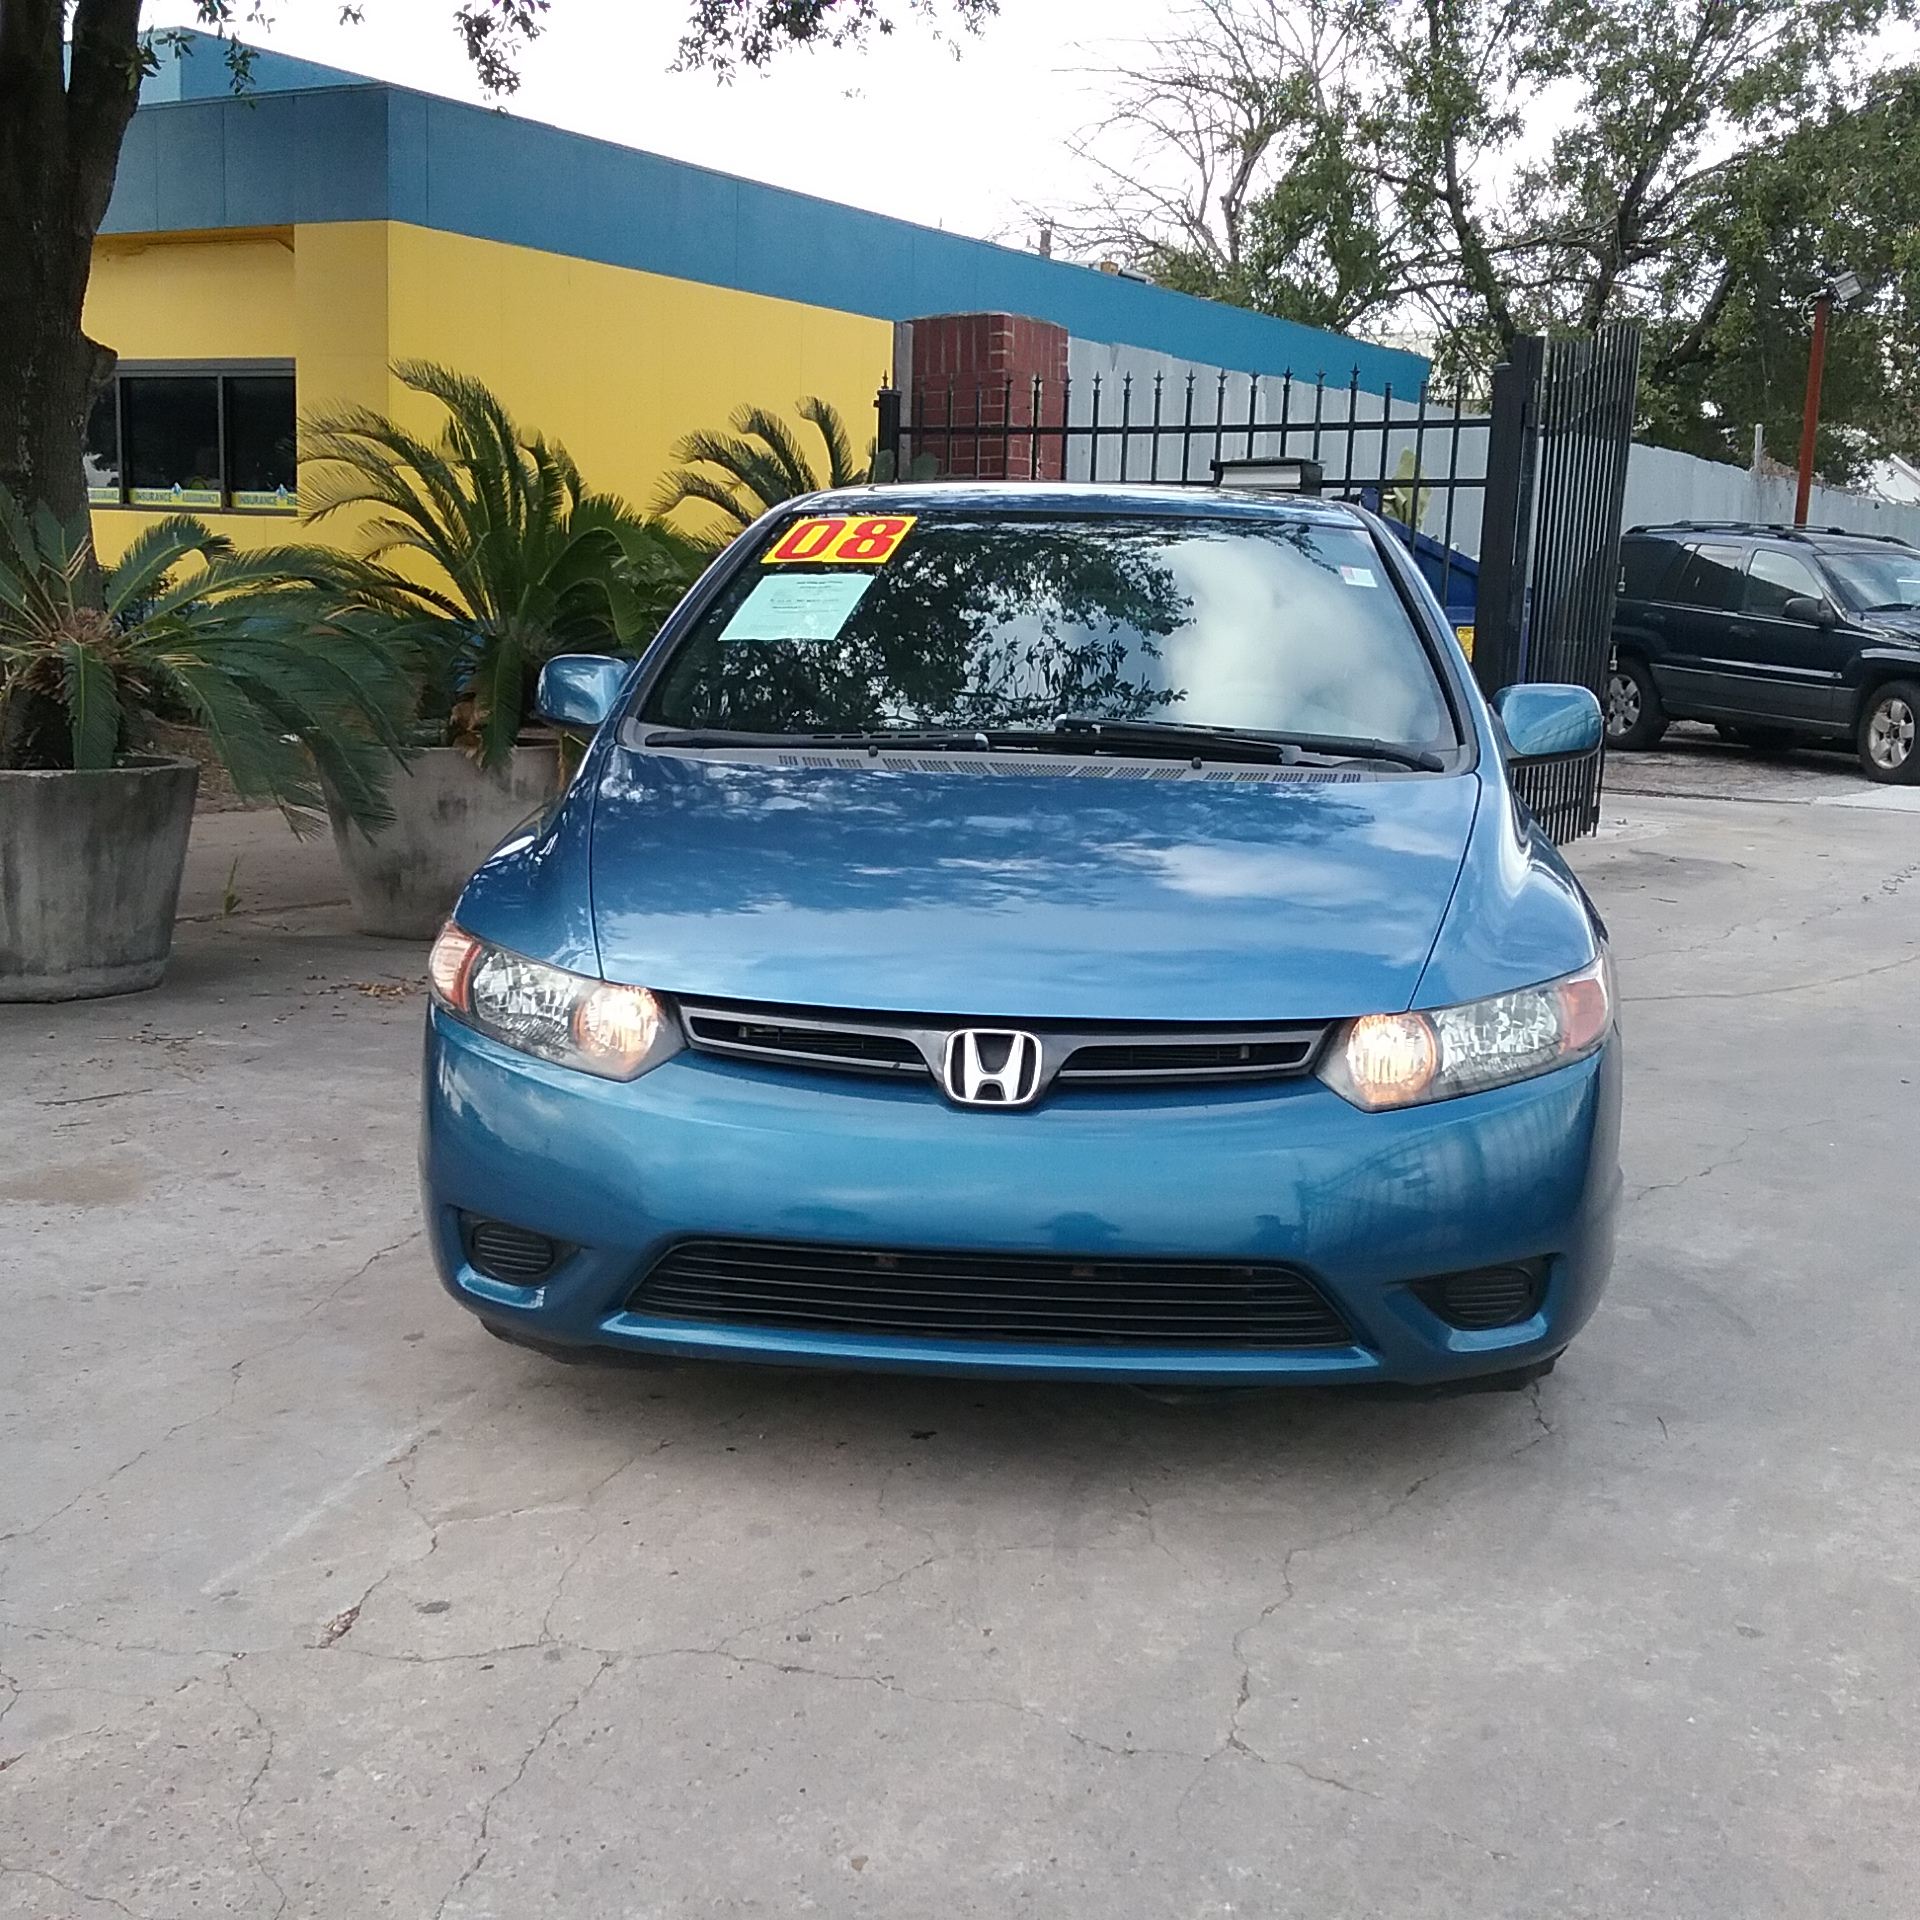 Auto Air Conditioning further Ae D B Bf Ec C Ce A furthermore B Uxzizol Sl Ac Ss likewise Full as well Mcxboyuuoyryubaz. on 2008 honda civic cabin air filter